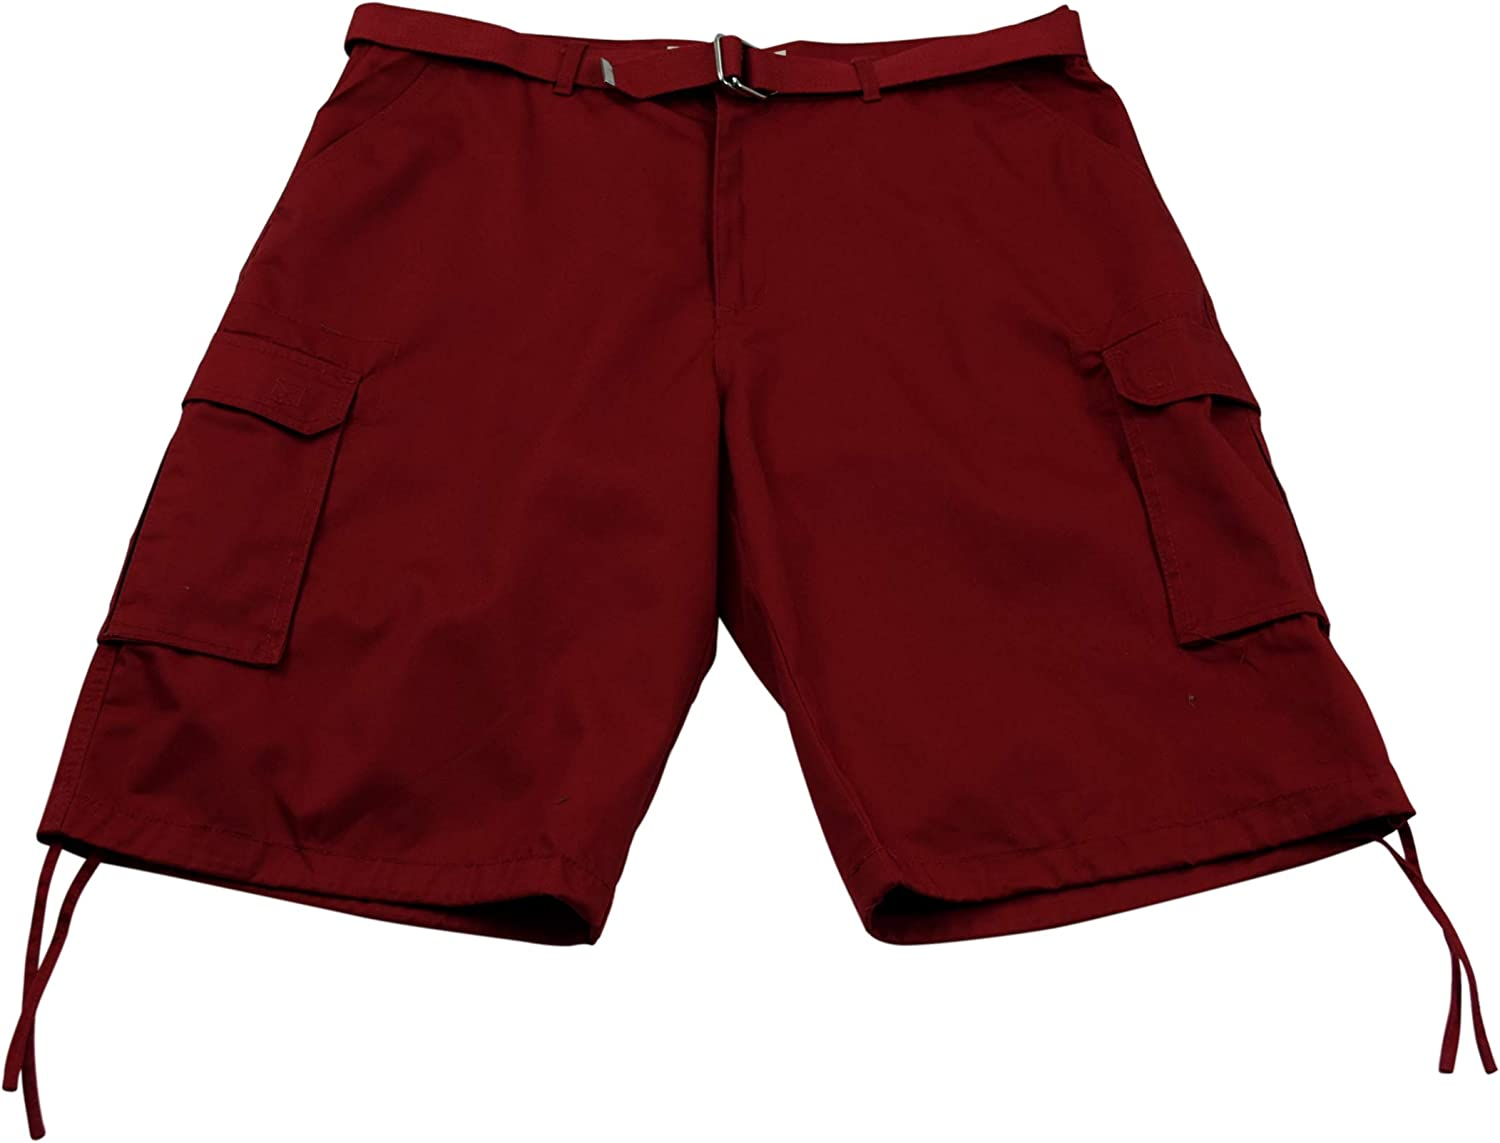 ChoiceApparel Mens Cargo Shorts (Many Pockets)